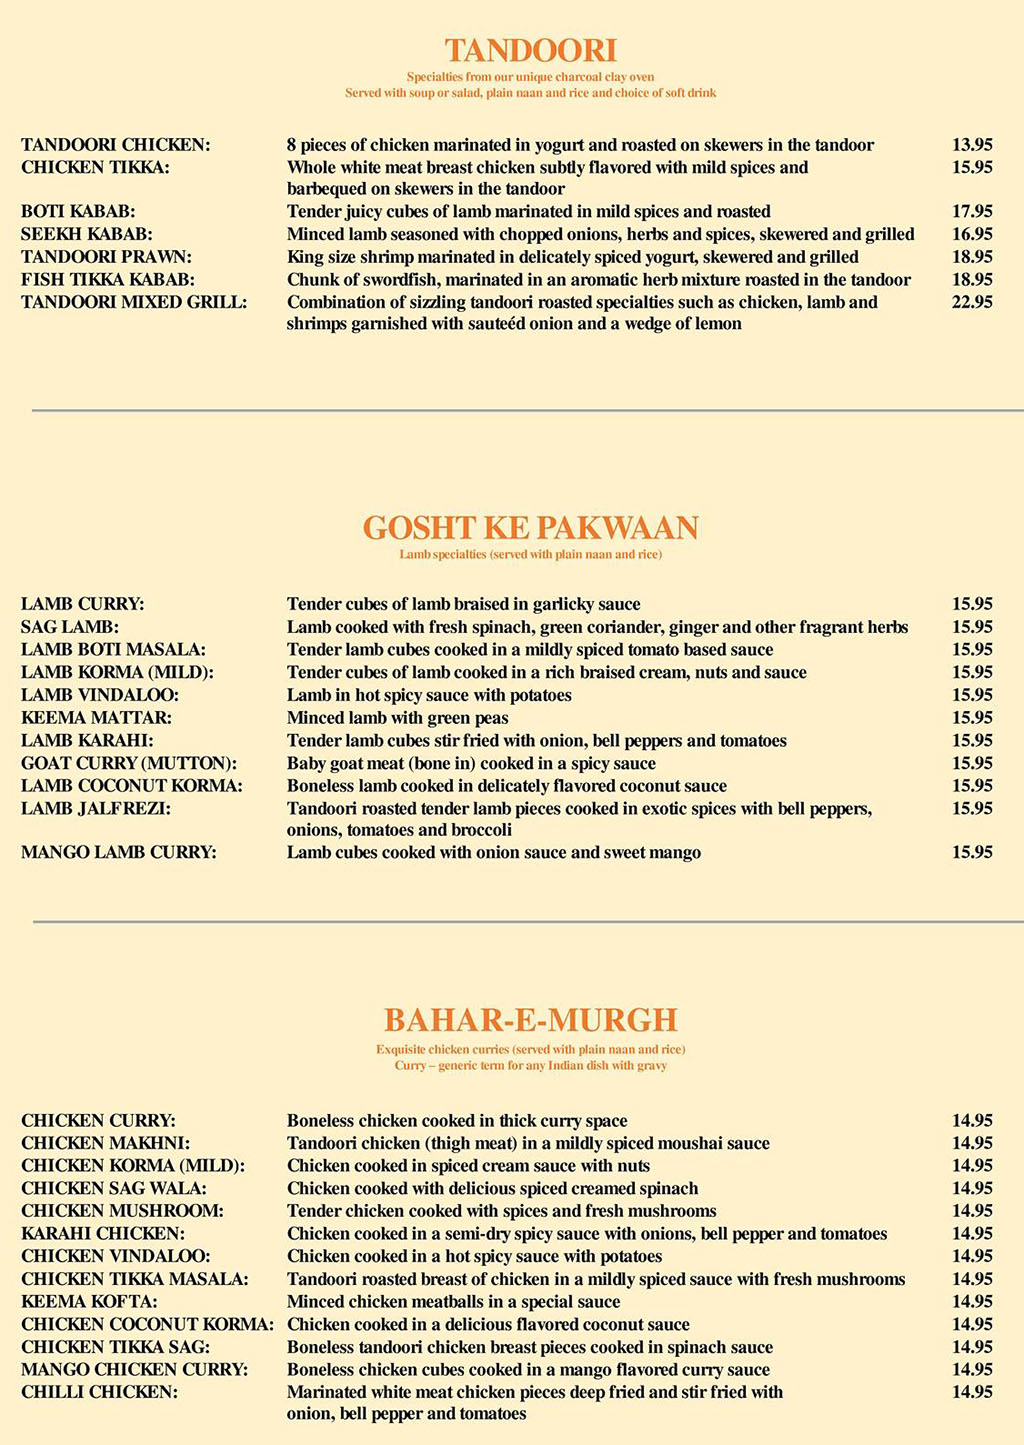 Taj India menu - tandoori, lamb, chicken